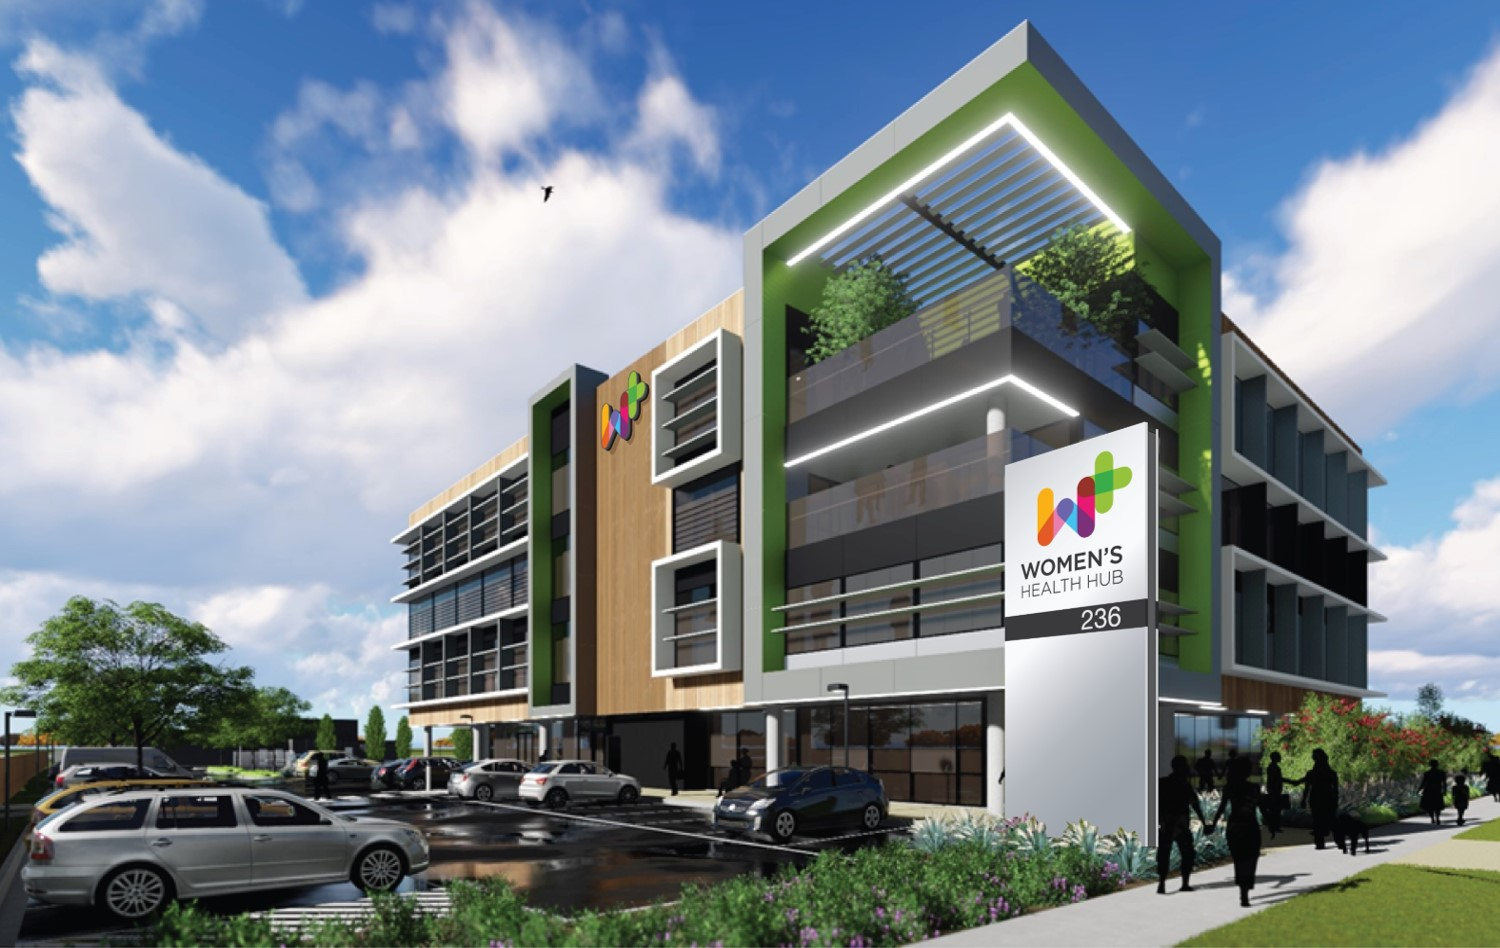 Melbourne sexual health clinic opening